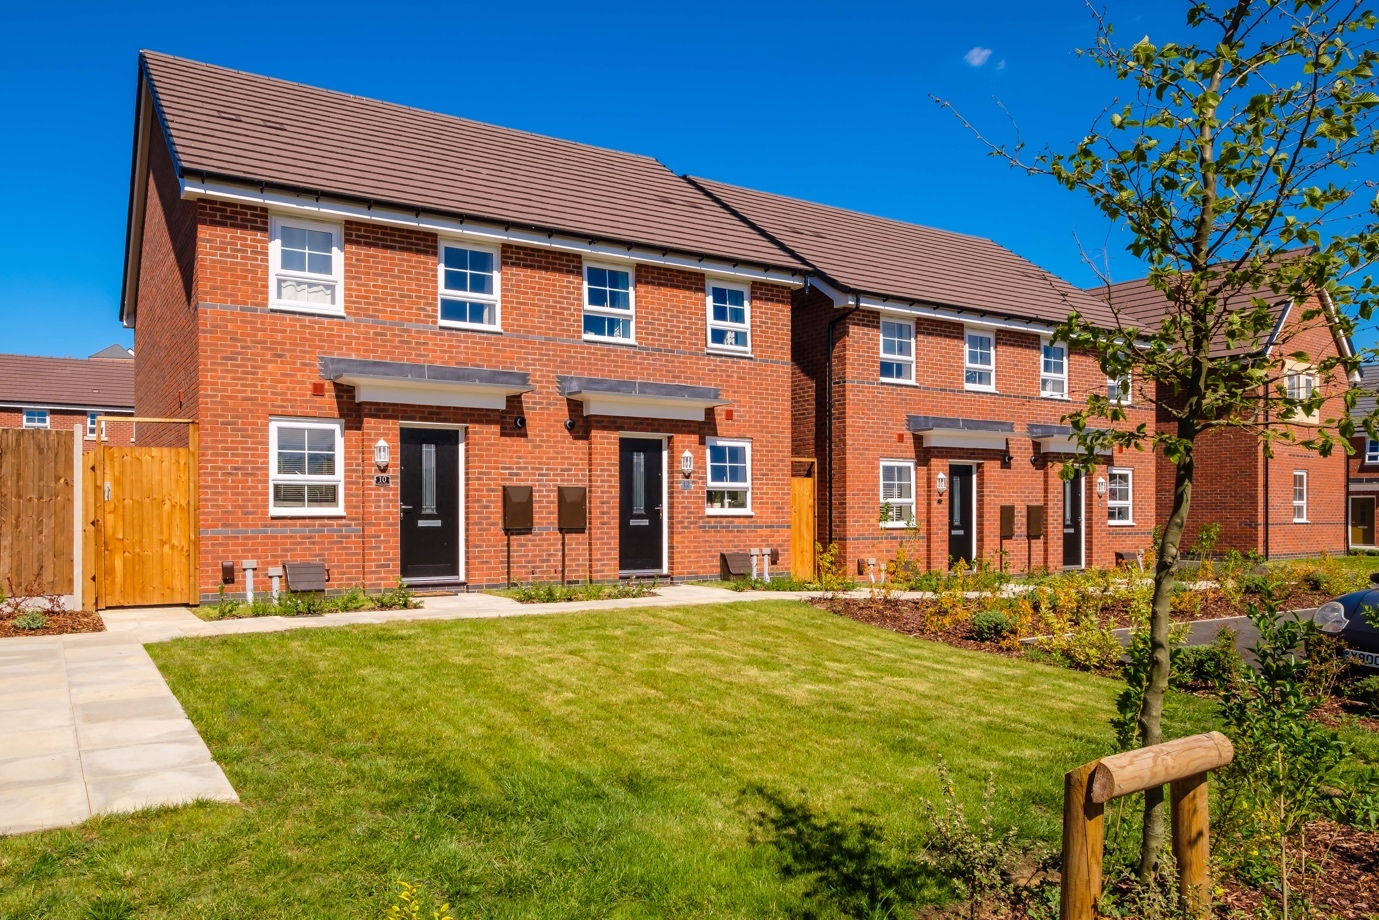 Barratt Developments To Re-open Sales Offices And Show Homes